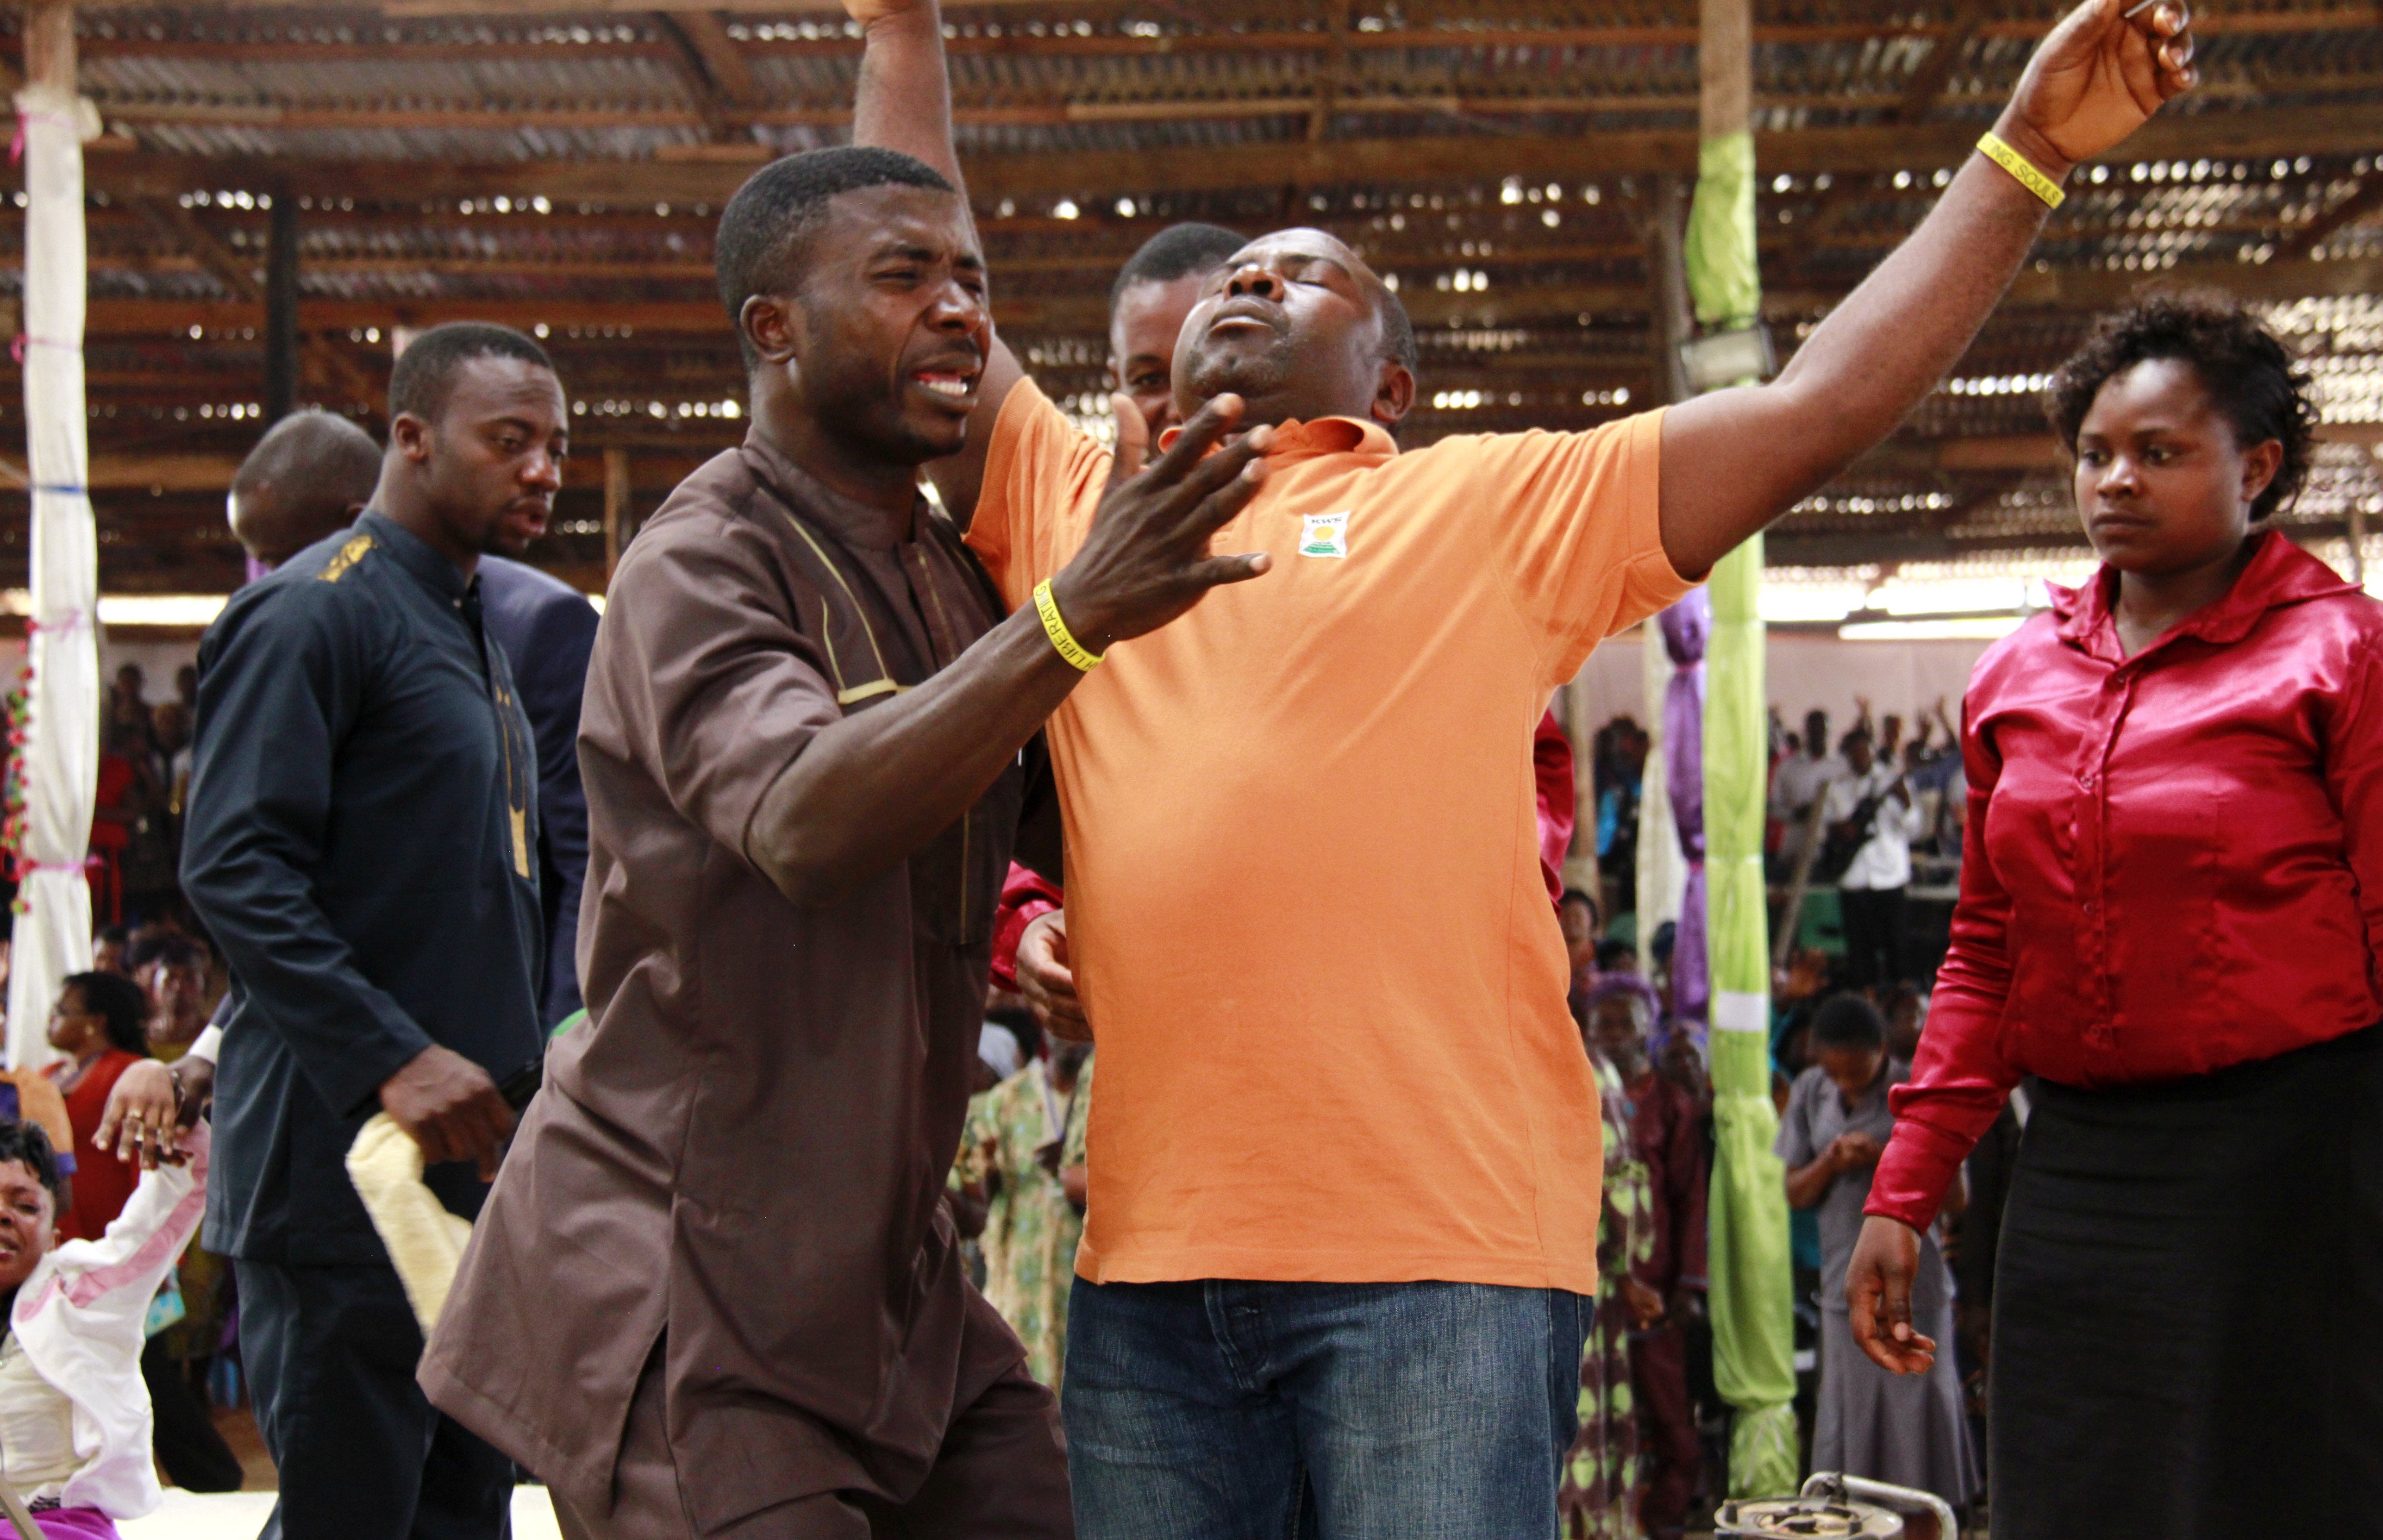 Pray Or Prey? Cameroon's Pentecostal Churches Face Crackdown